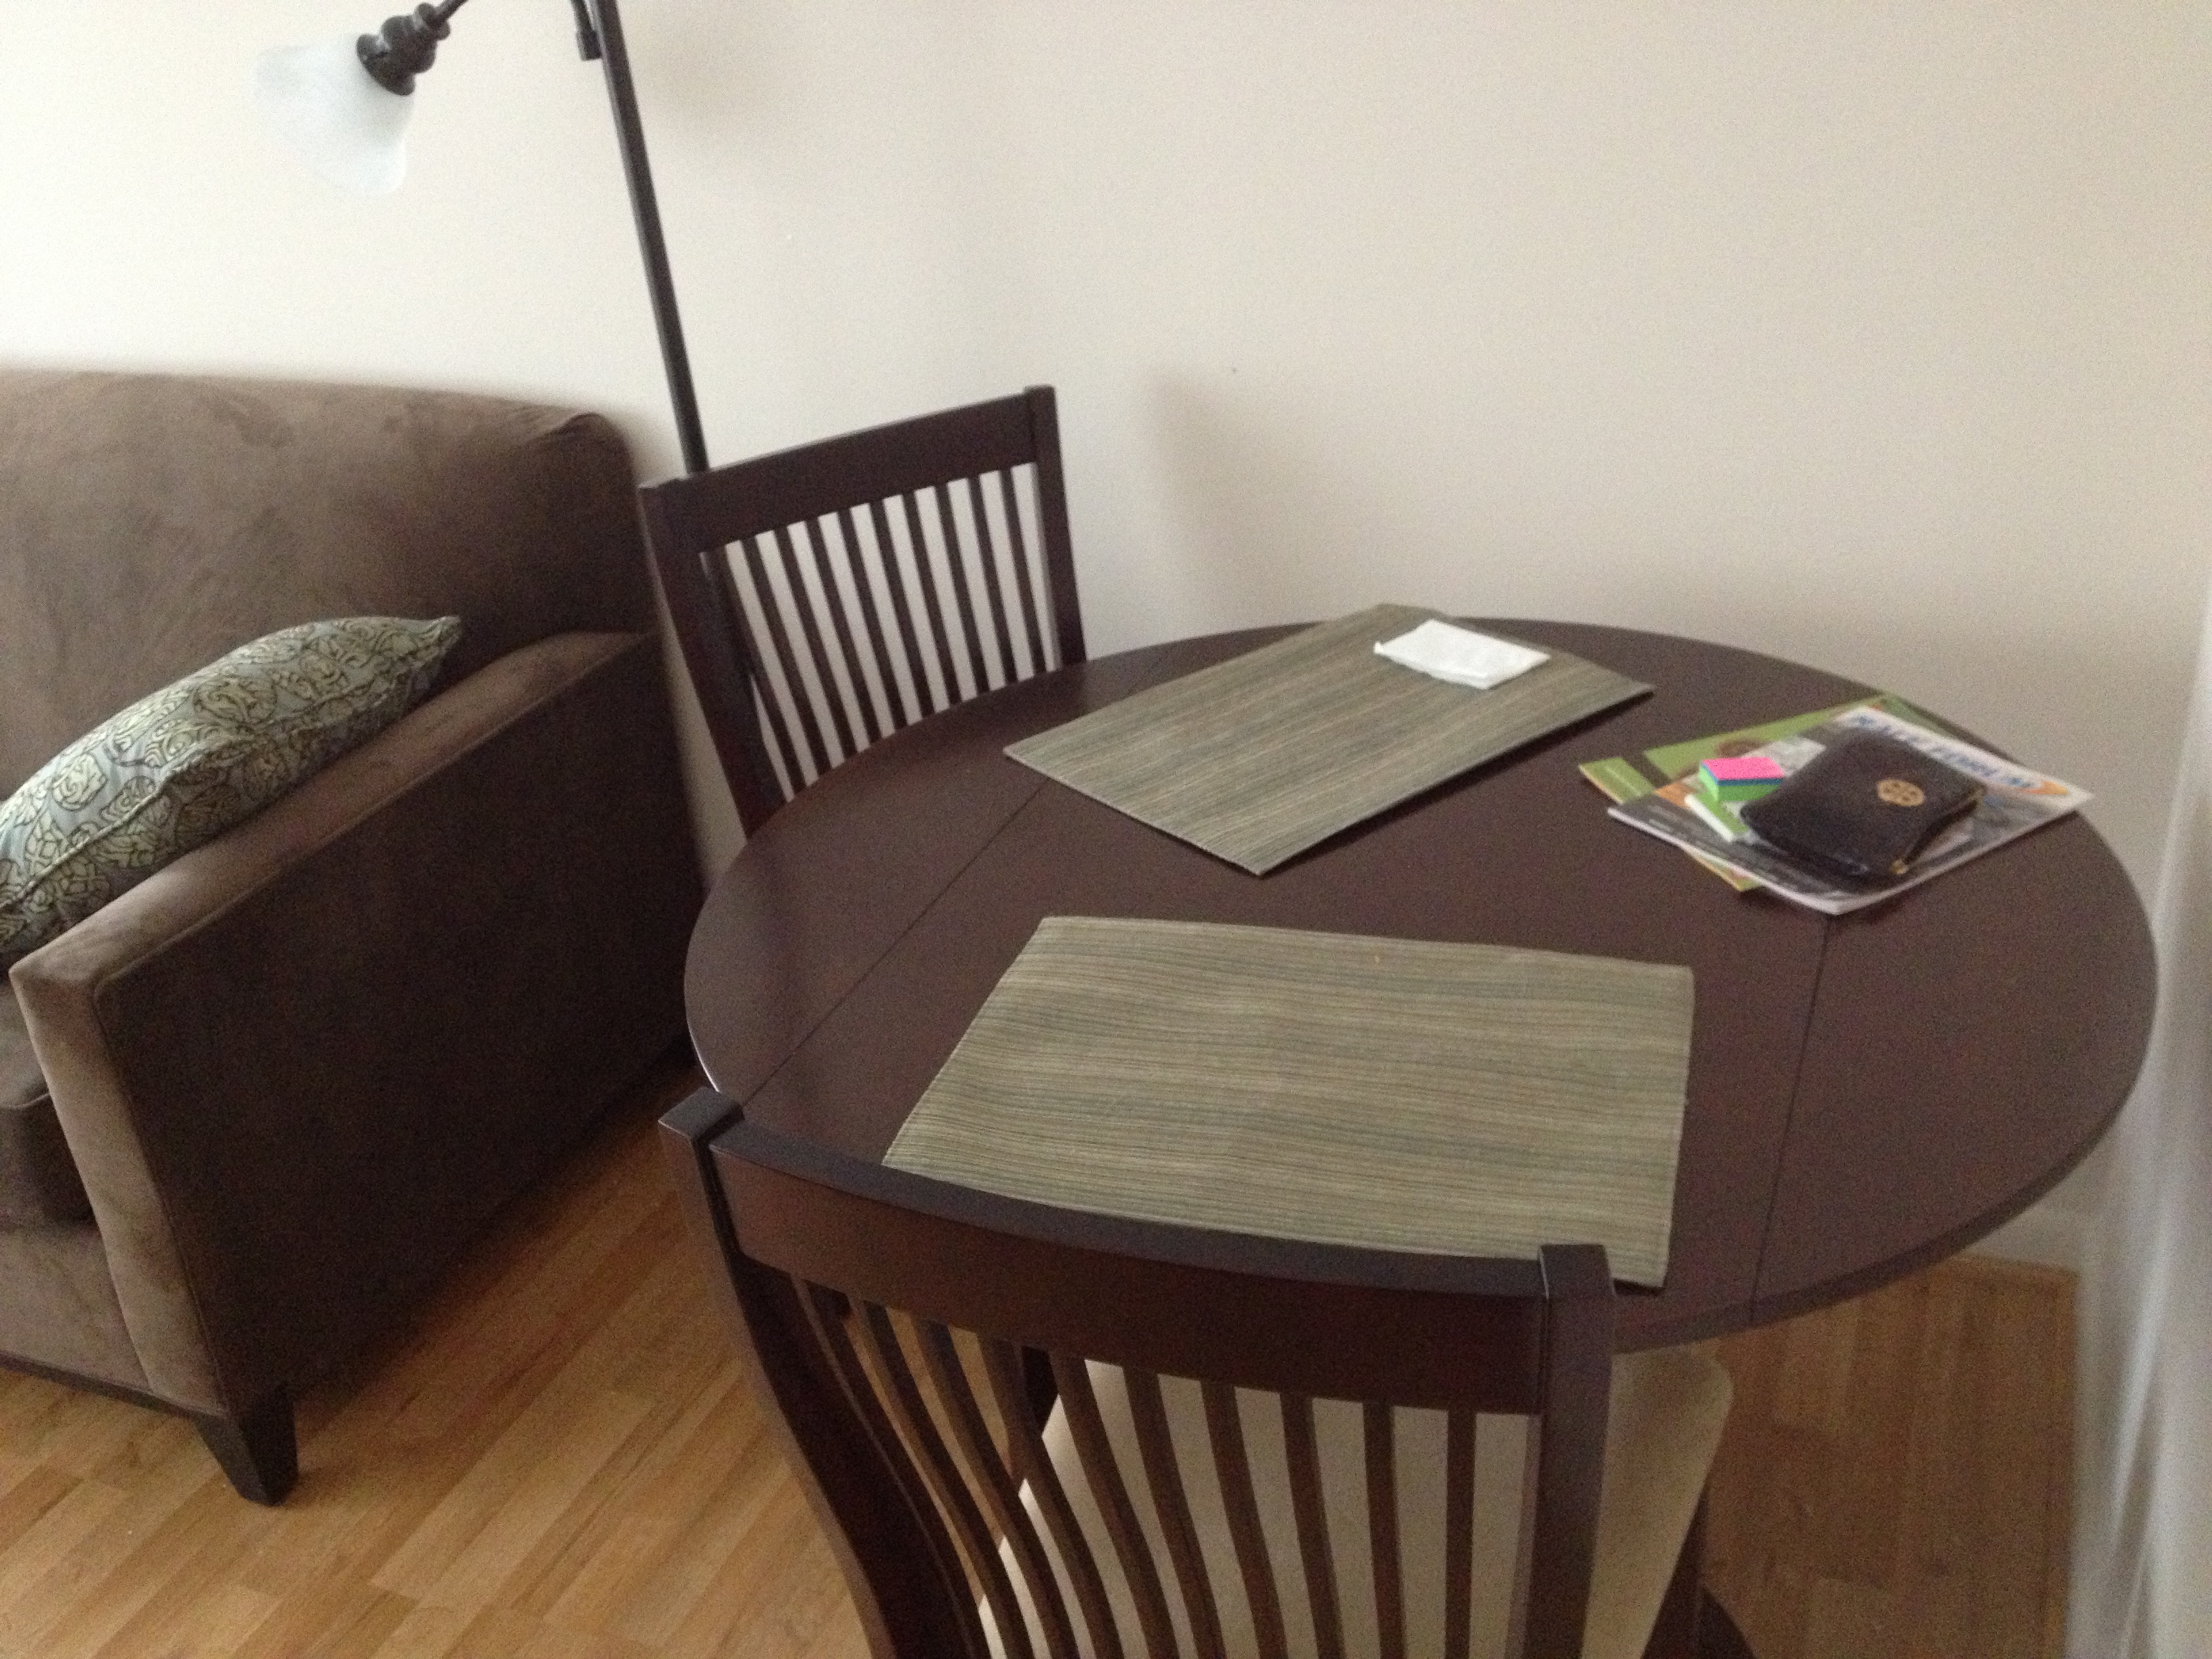 http://fitnessandfrozengrapes.files.wordpress.com/2012/10/nyc-apartment-dining-table.jpg